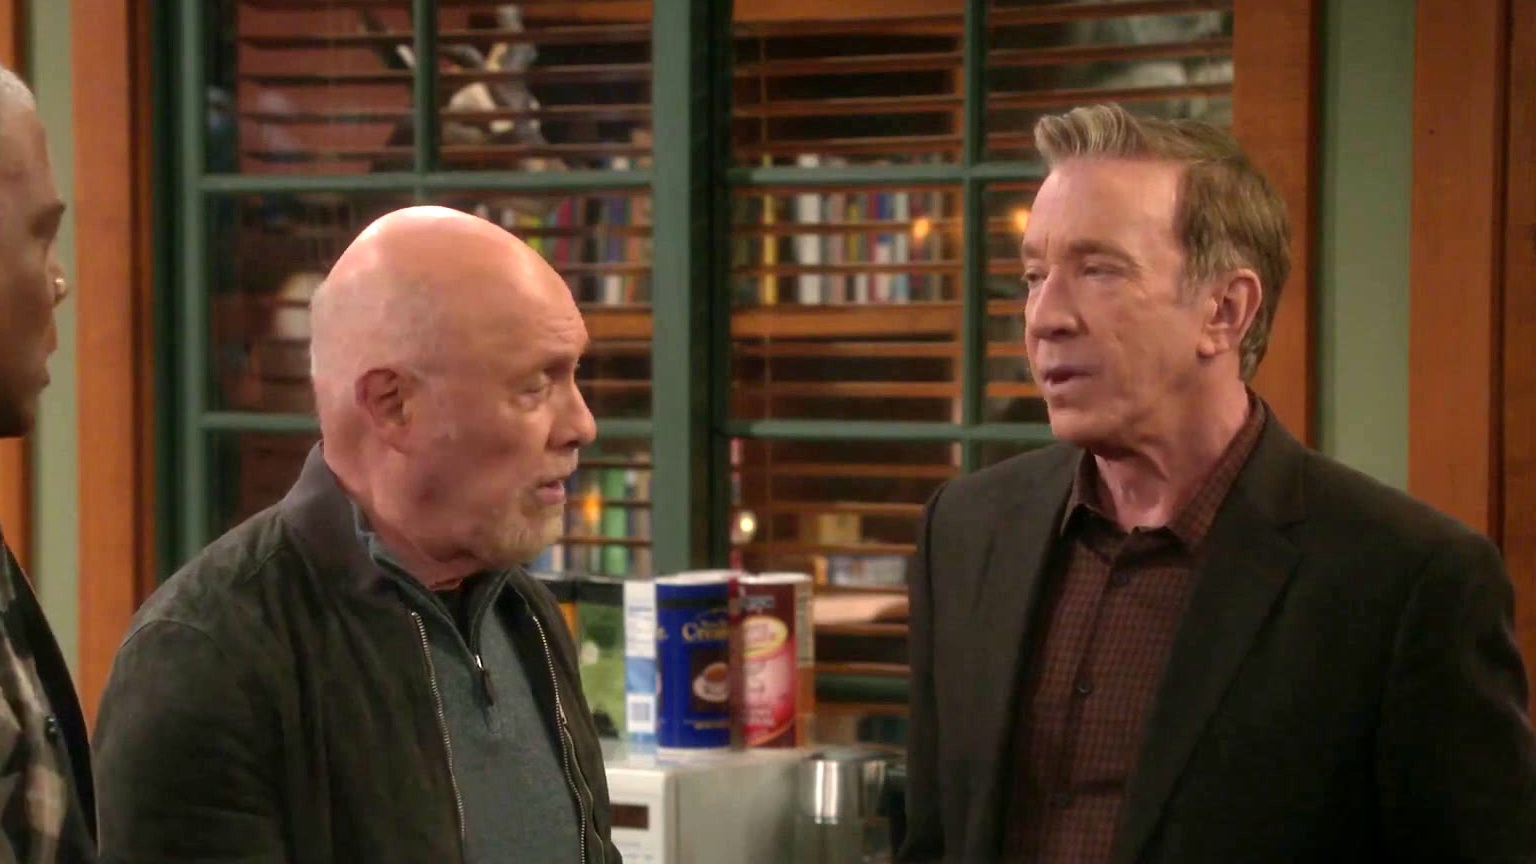 Last Man Standing: A Shout Out From Jeff Dunham